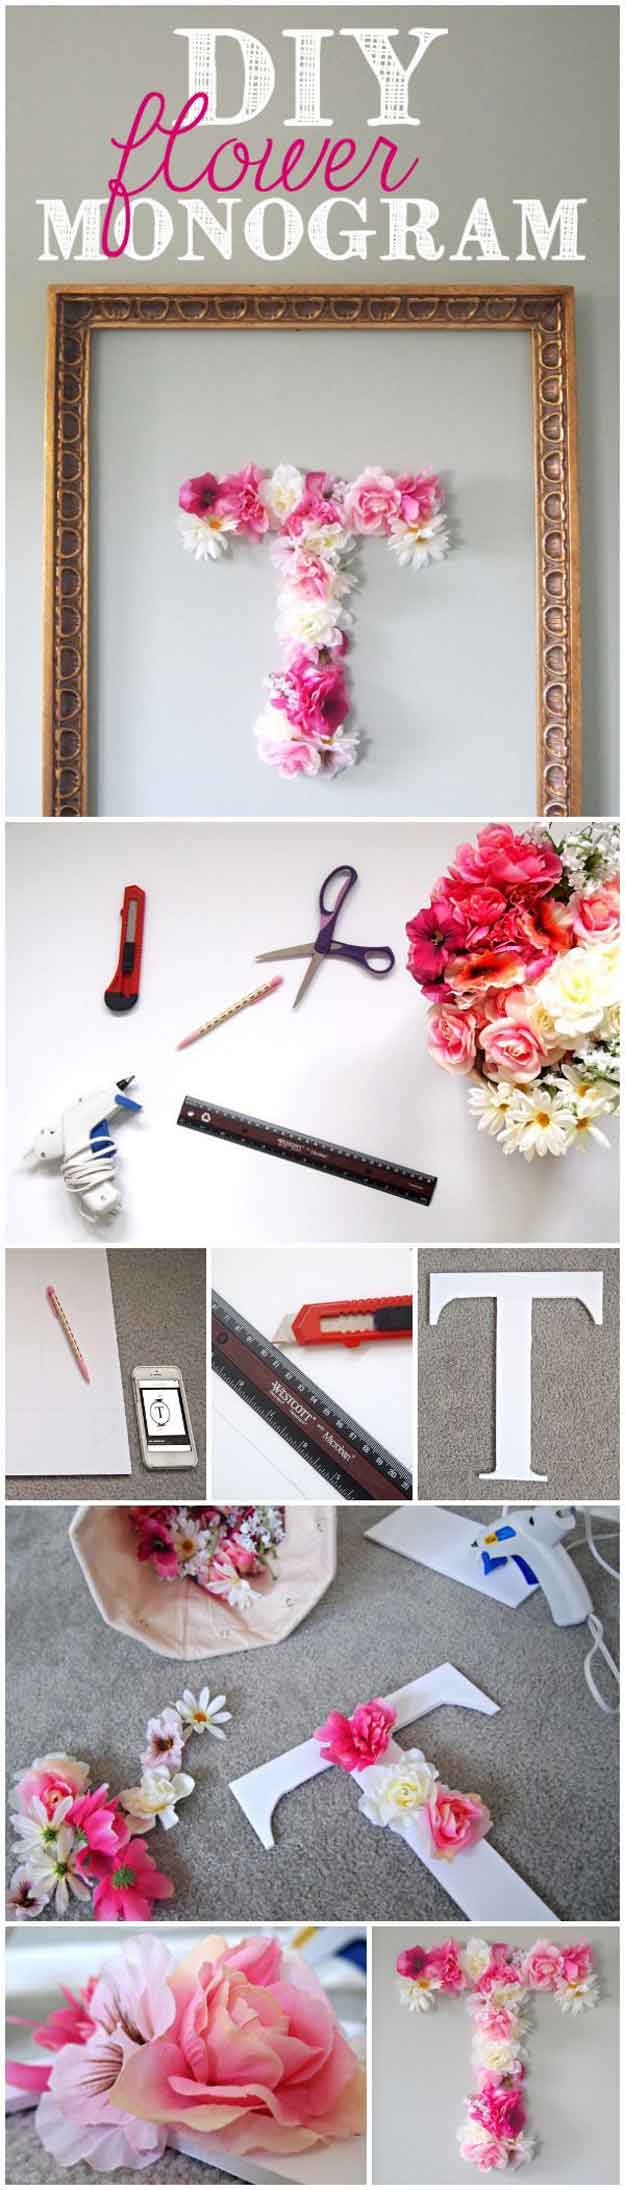 DIY Projects for Teens Bedroom DIY Ready on Room Decor For Teenagers  id=76686